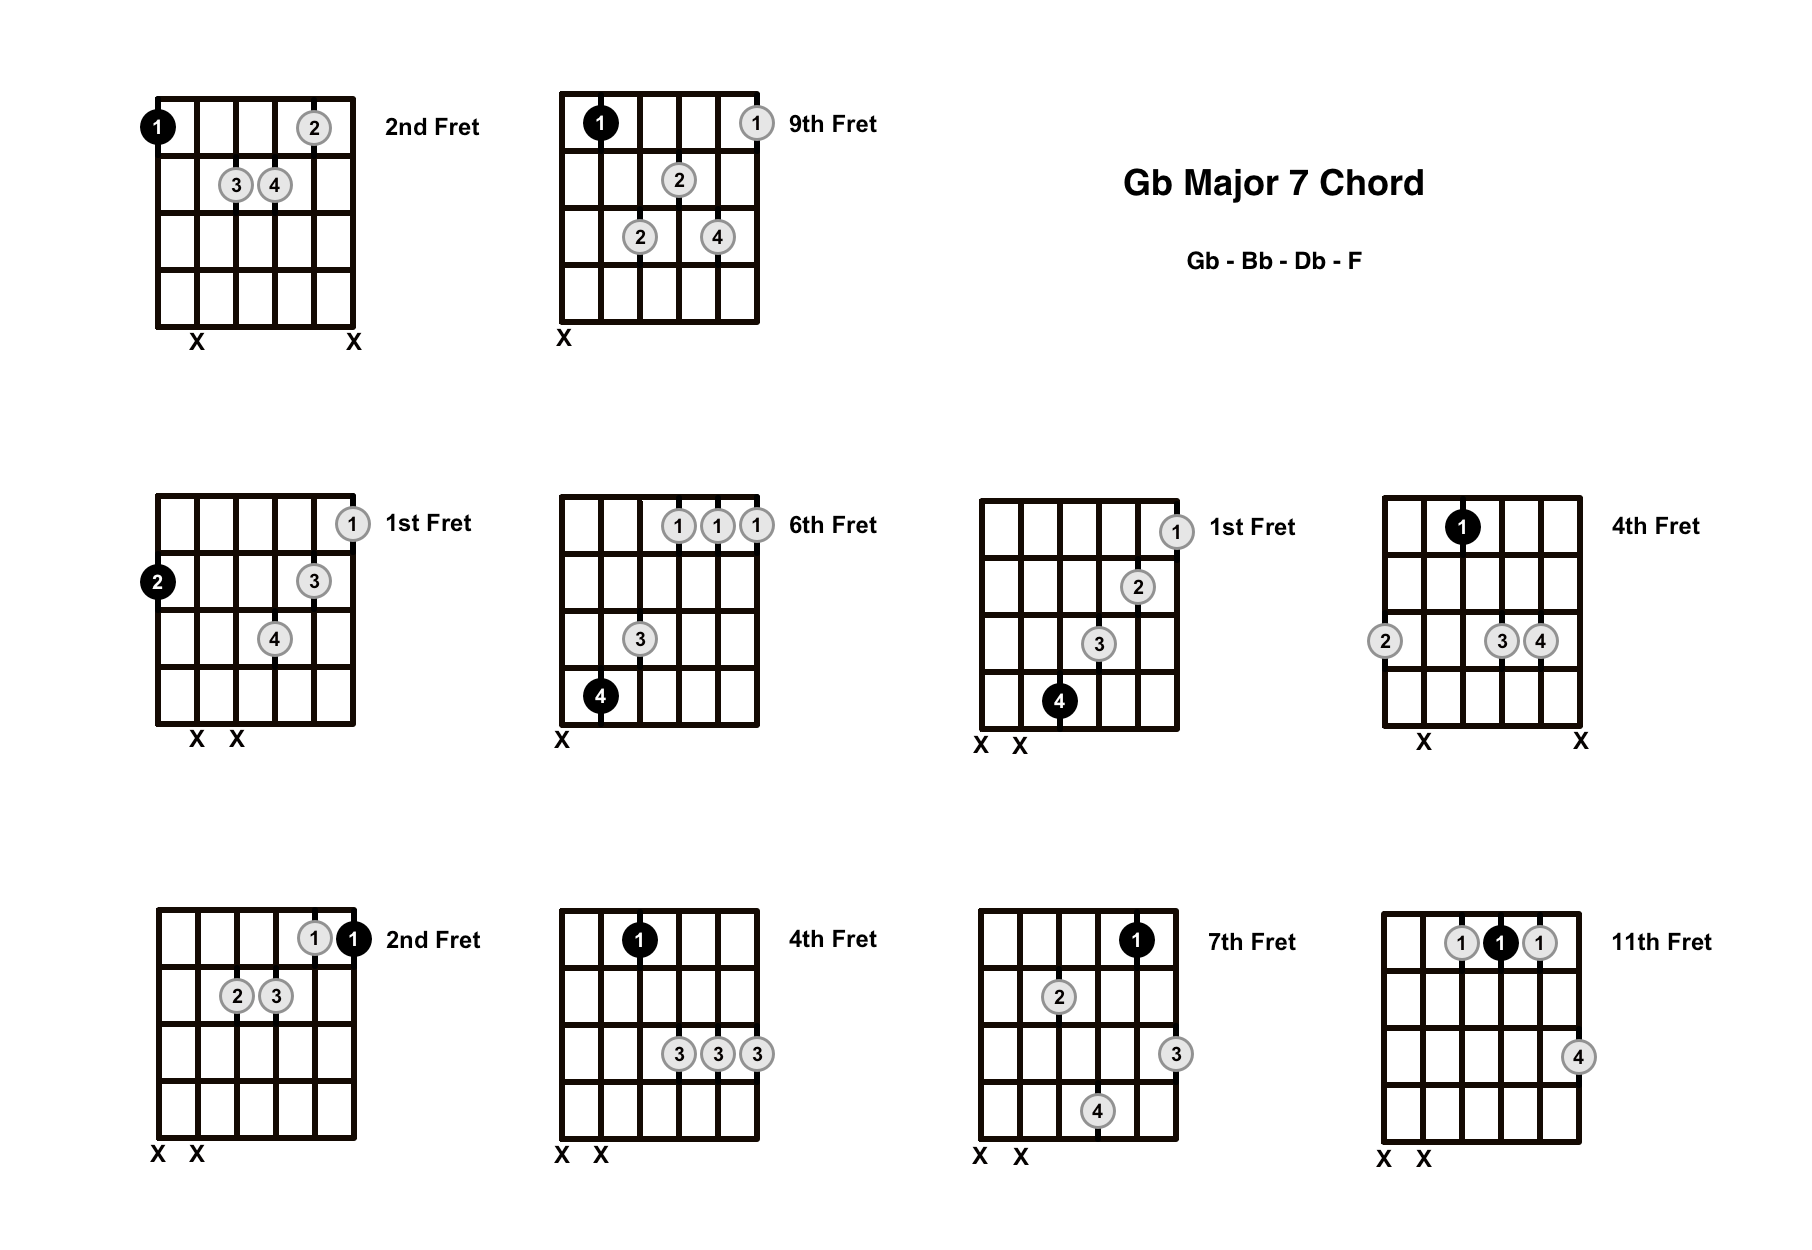 G Flat Major 7 Chord On The Guitar (Gb Maj 7) – Diagrams, Finger Positions and Theory